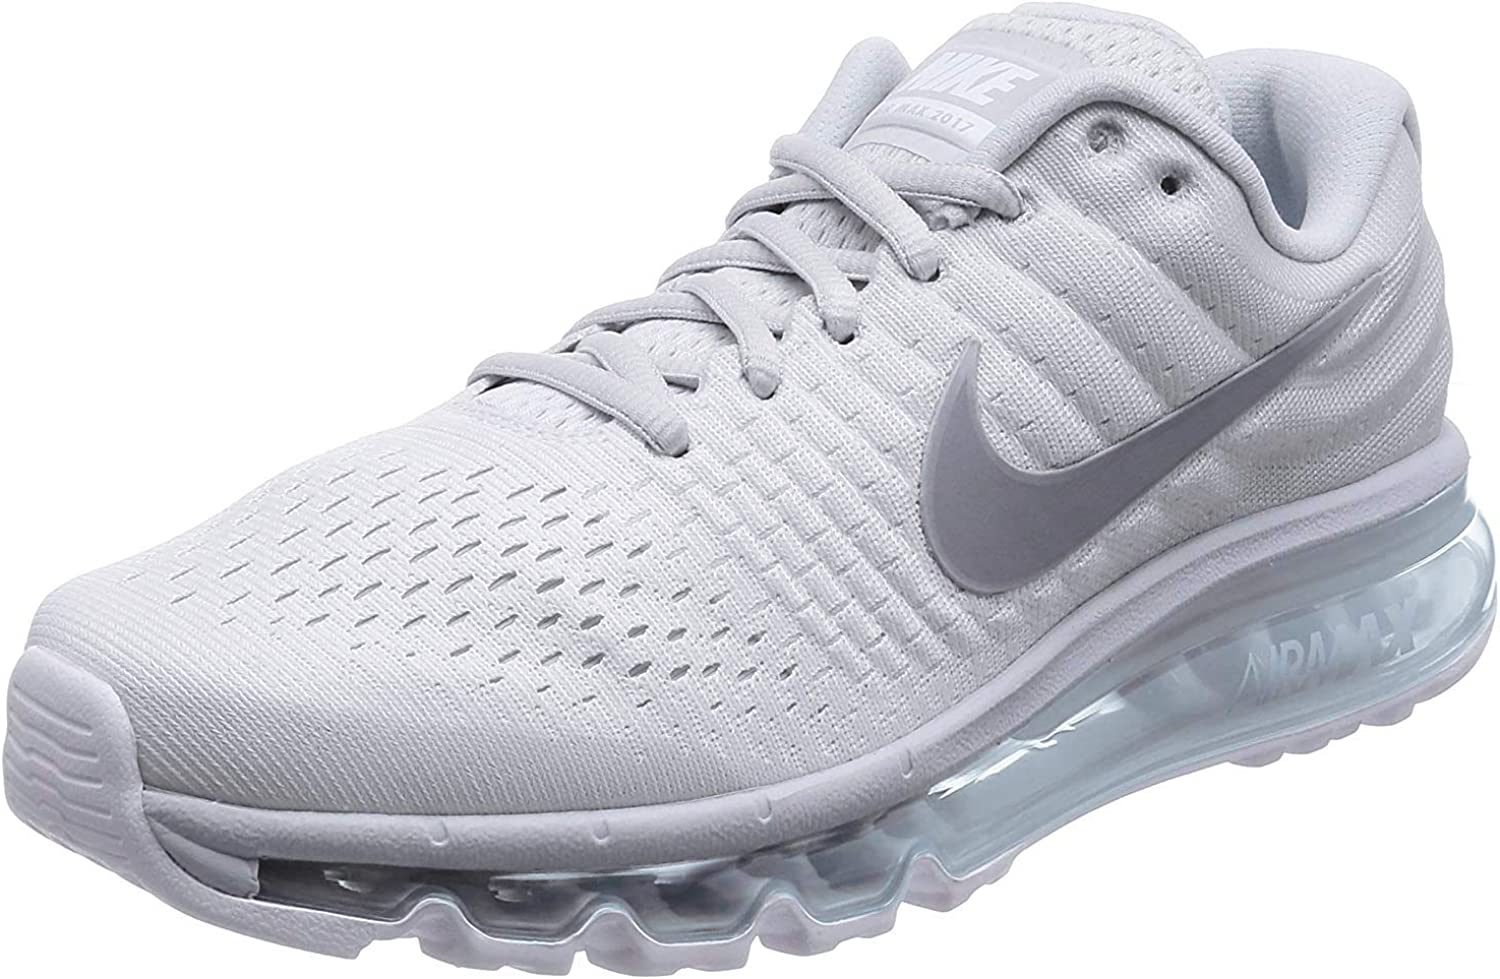 Nike Mens Air Max 2017 Grey/White 849559-101: Amazon.es: Deportes ...